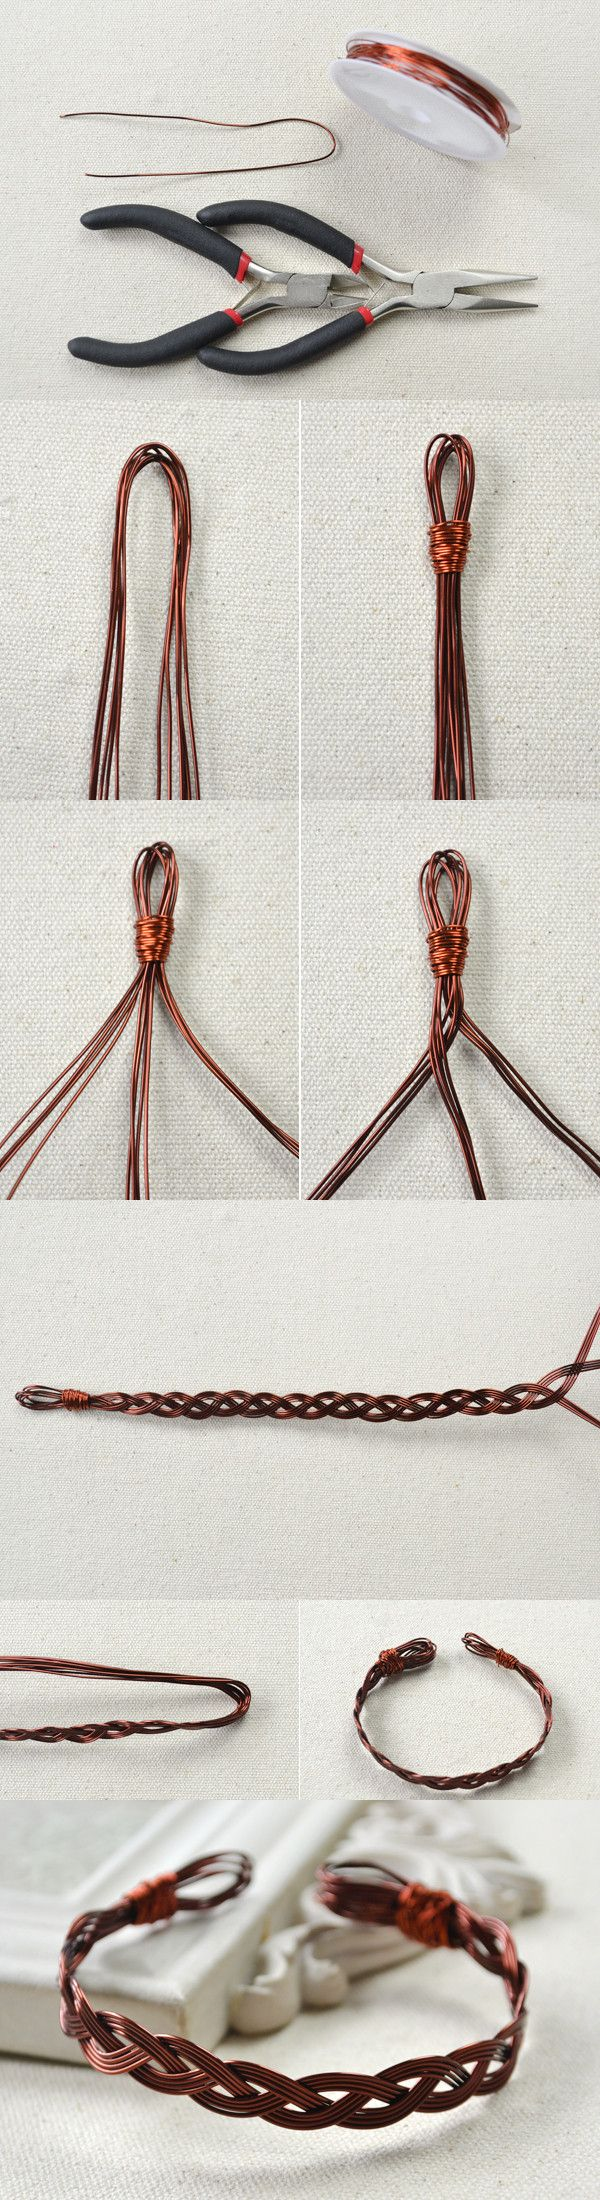 Copper Wire Crafts Ideas | Crafting